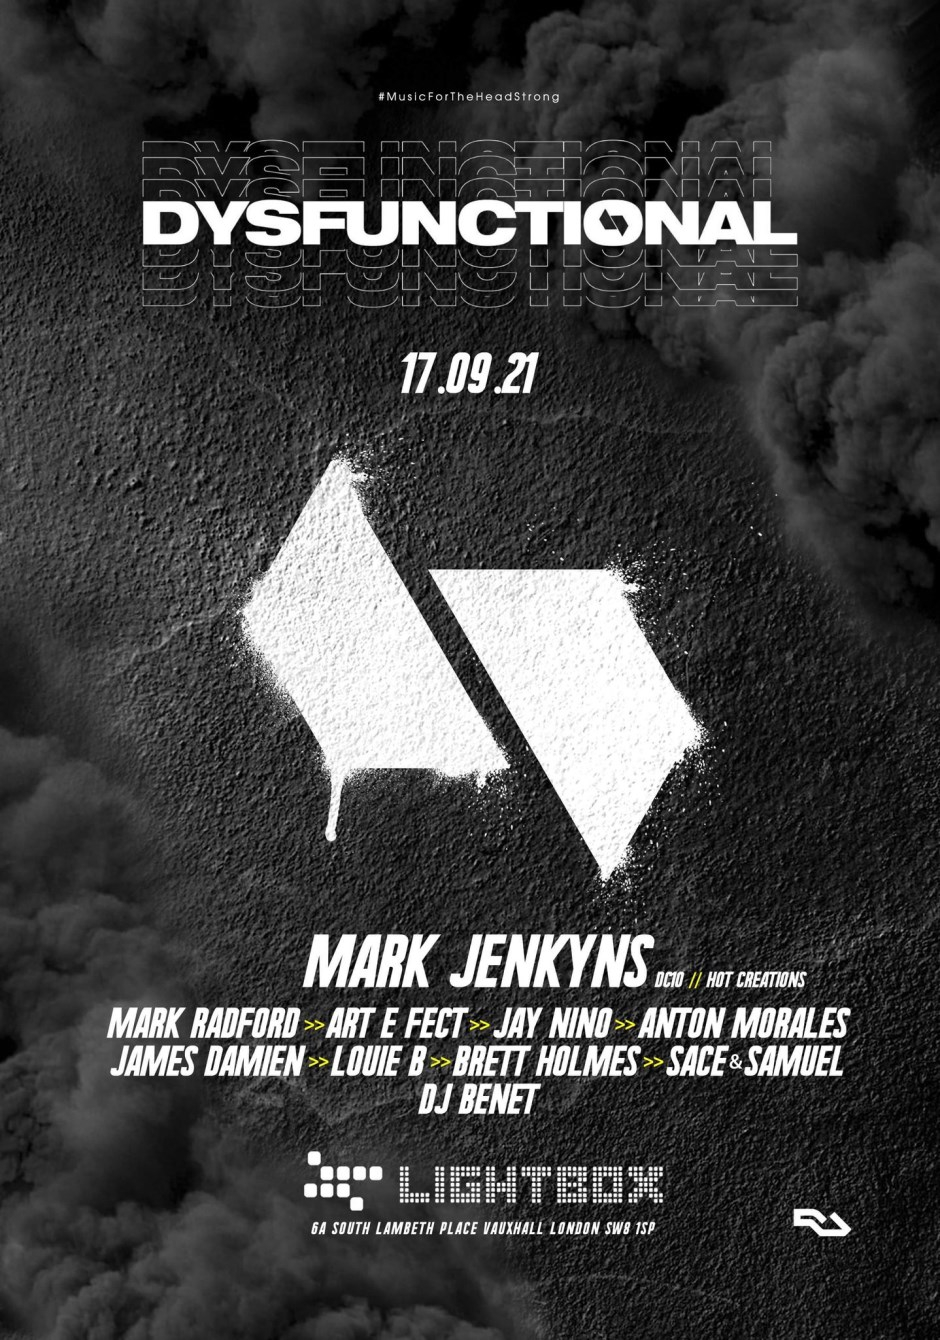 Dysfunctional - Flyer front